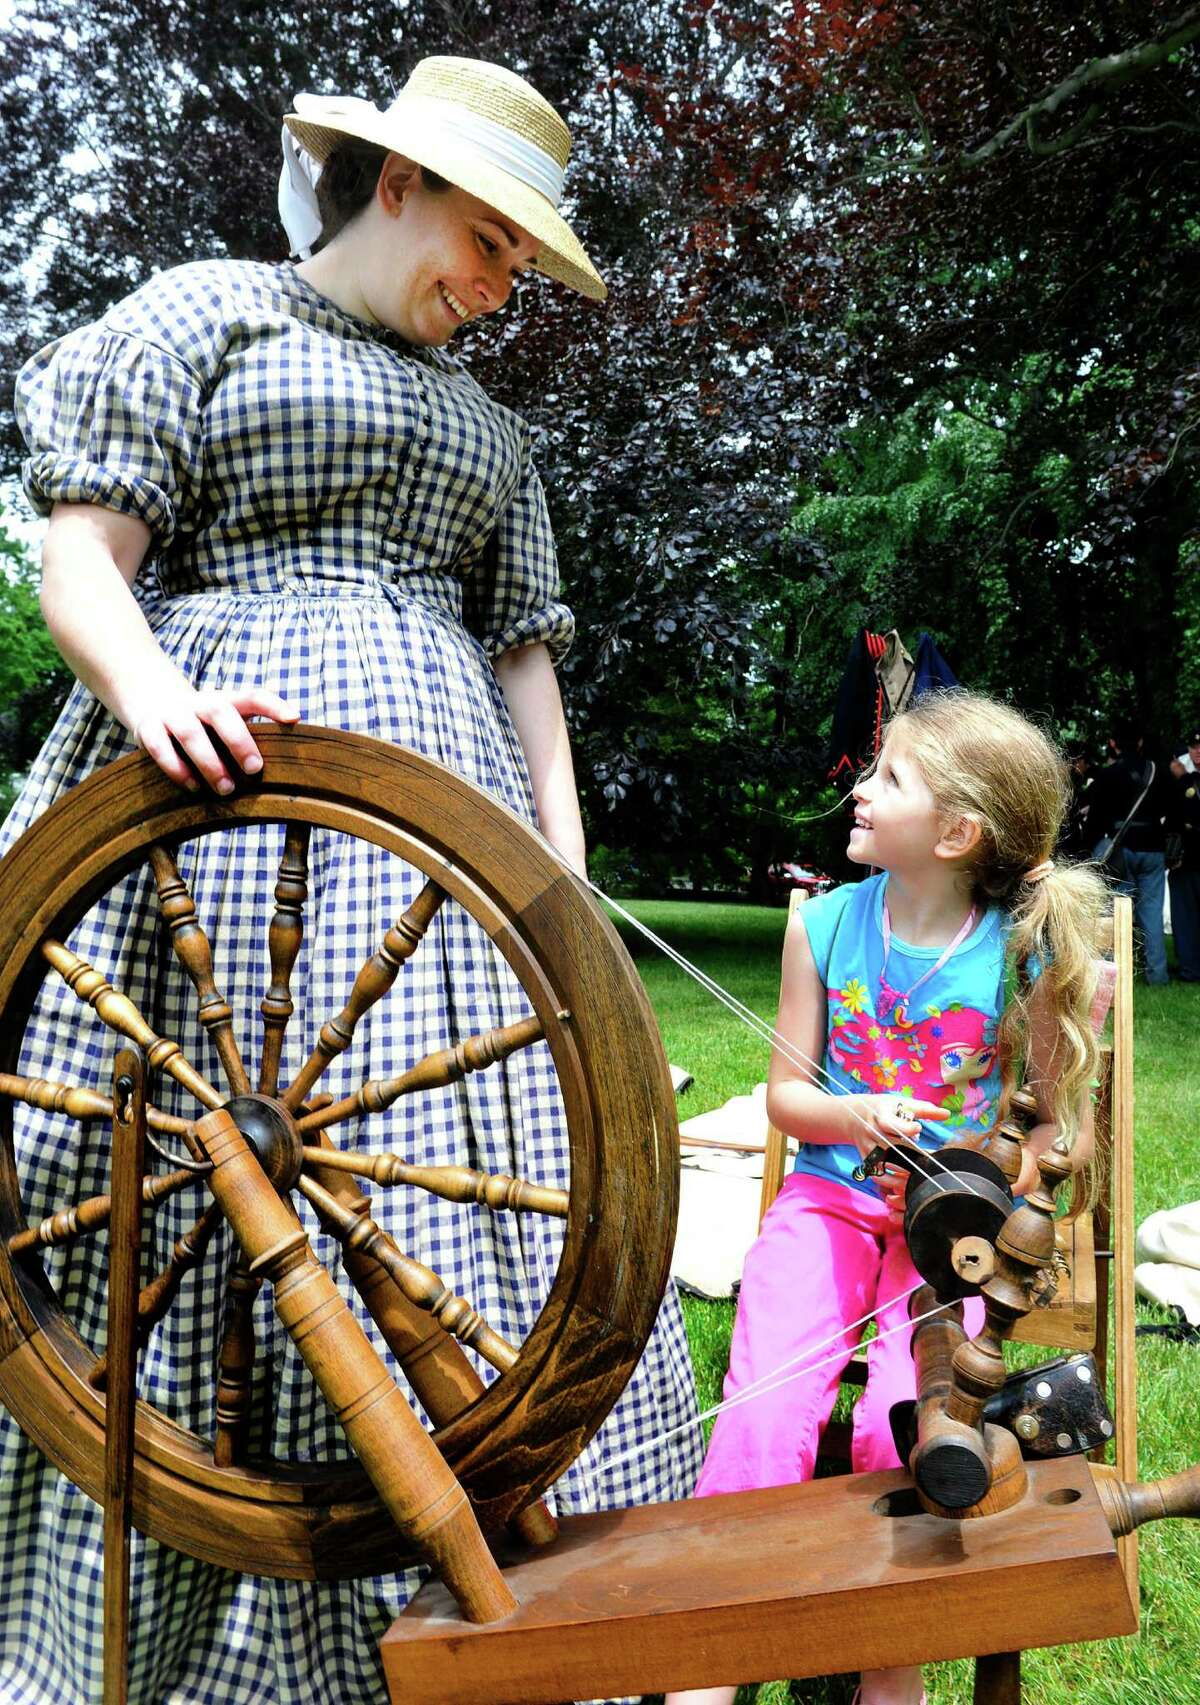 Emily Wompisik Unnokon tells Isabella Macri, 7, about a 1770 flax wheel during a Soldiers Fair, with re-enactors recreating camp life and expierences shared by Union soldiers 150 years ago, at Ballard park in Ridgefield, Conn. Saturday, June 8, 2012.